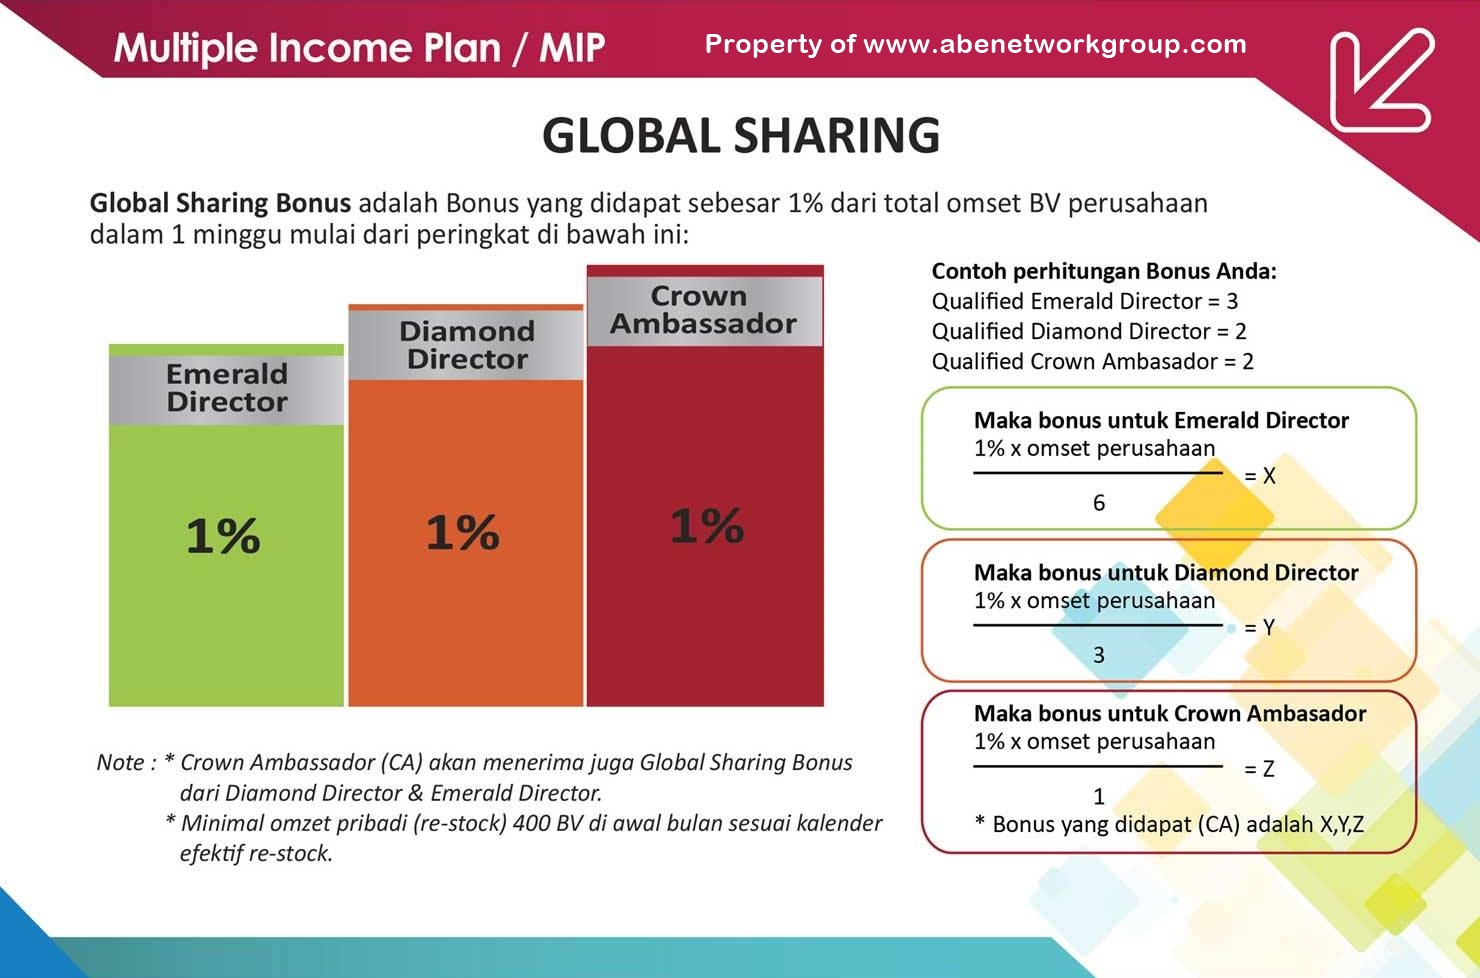 Global Sharing Bonus Usaha Rumahan